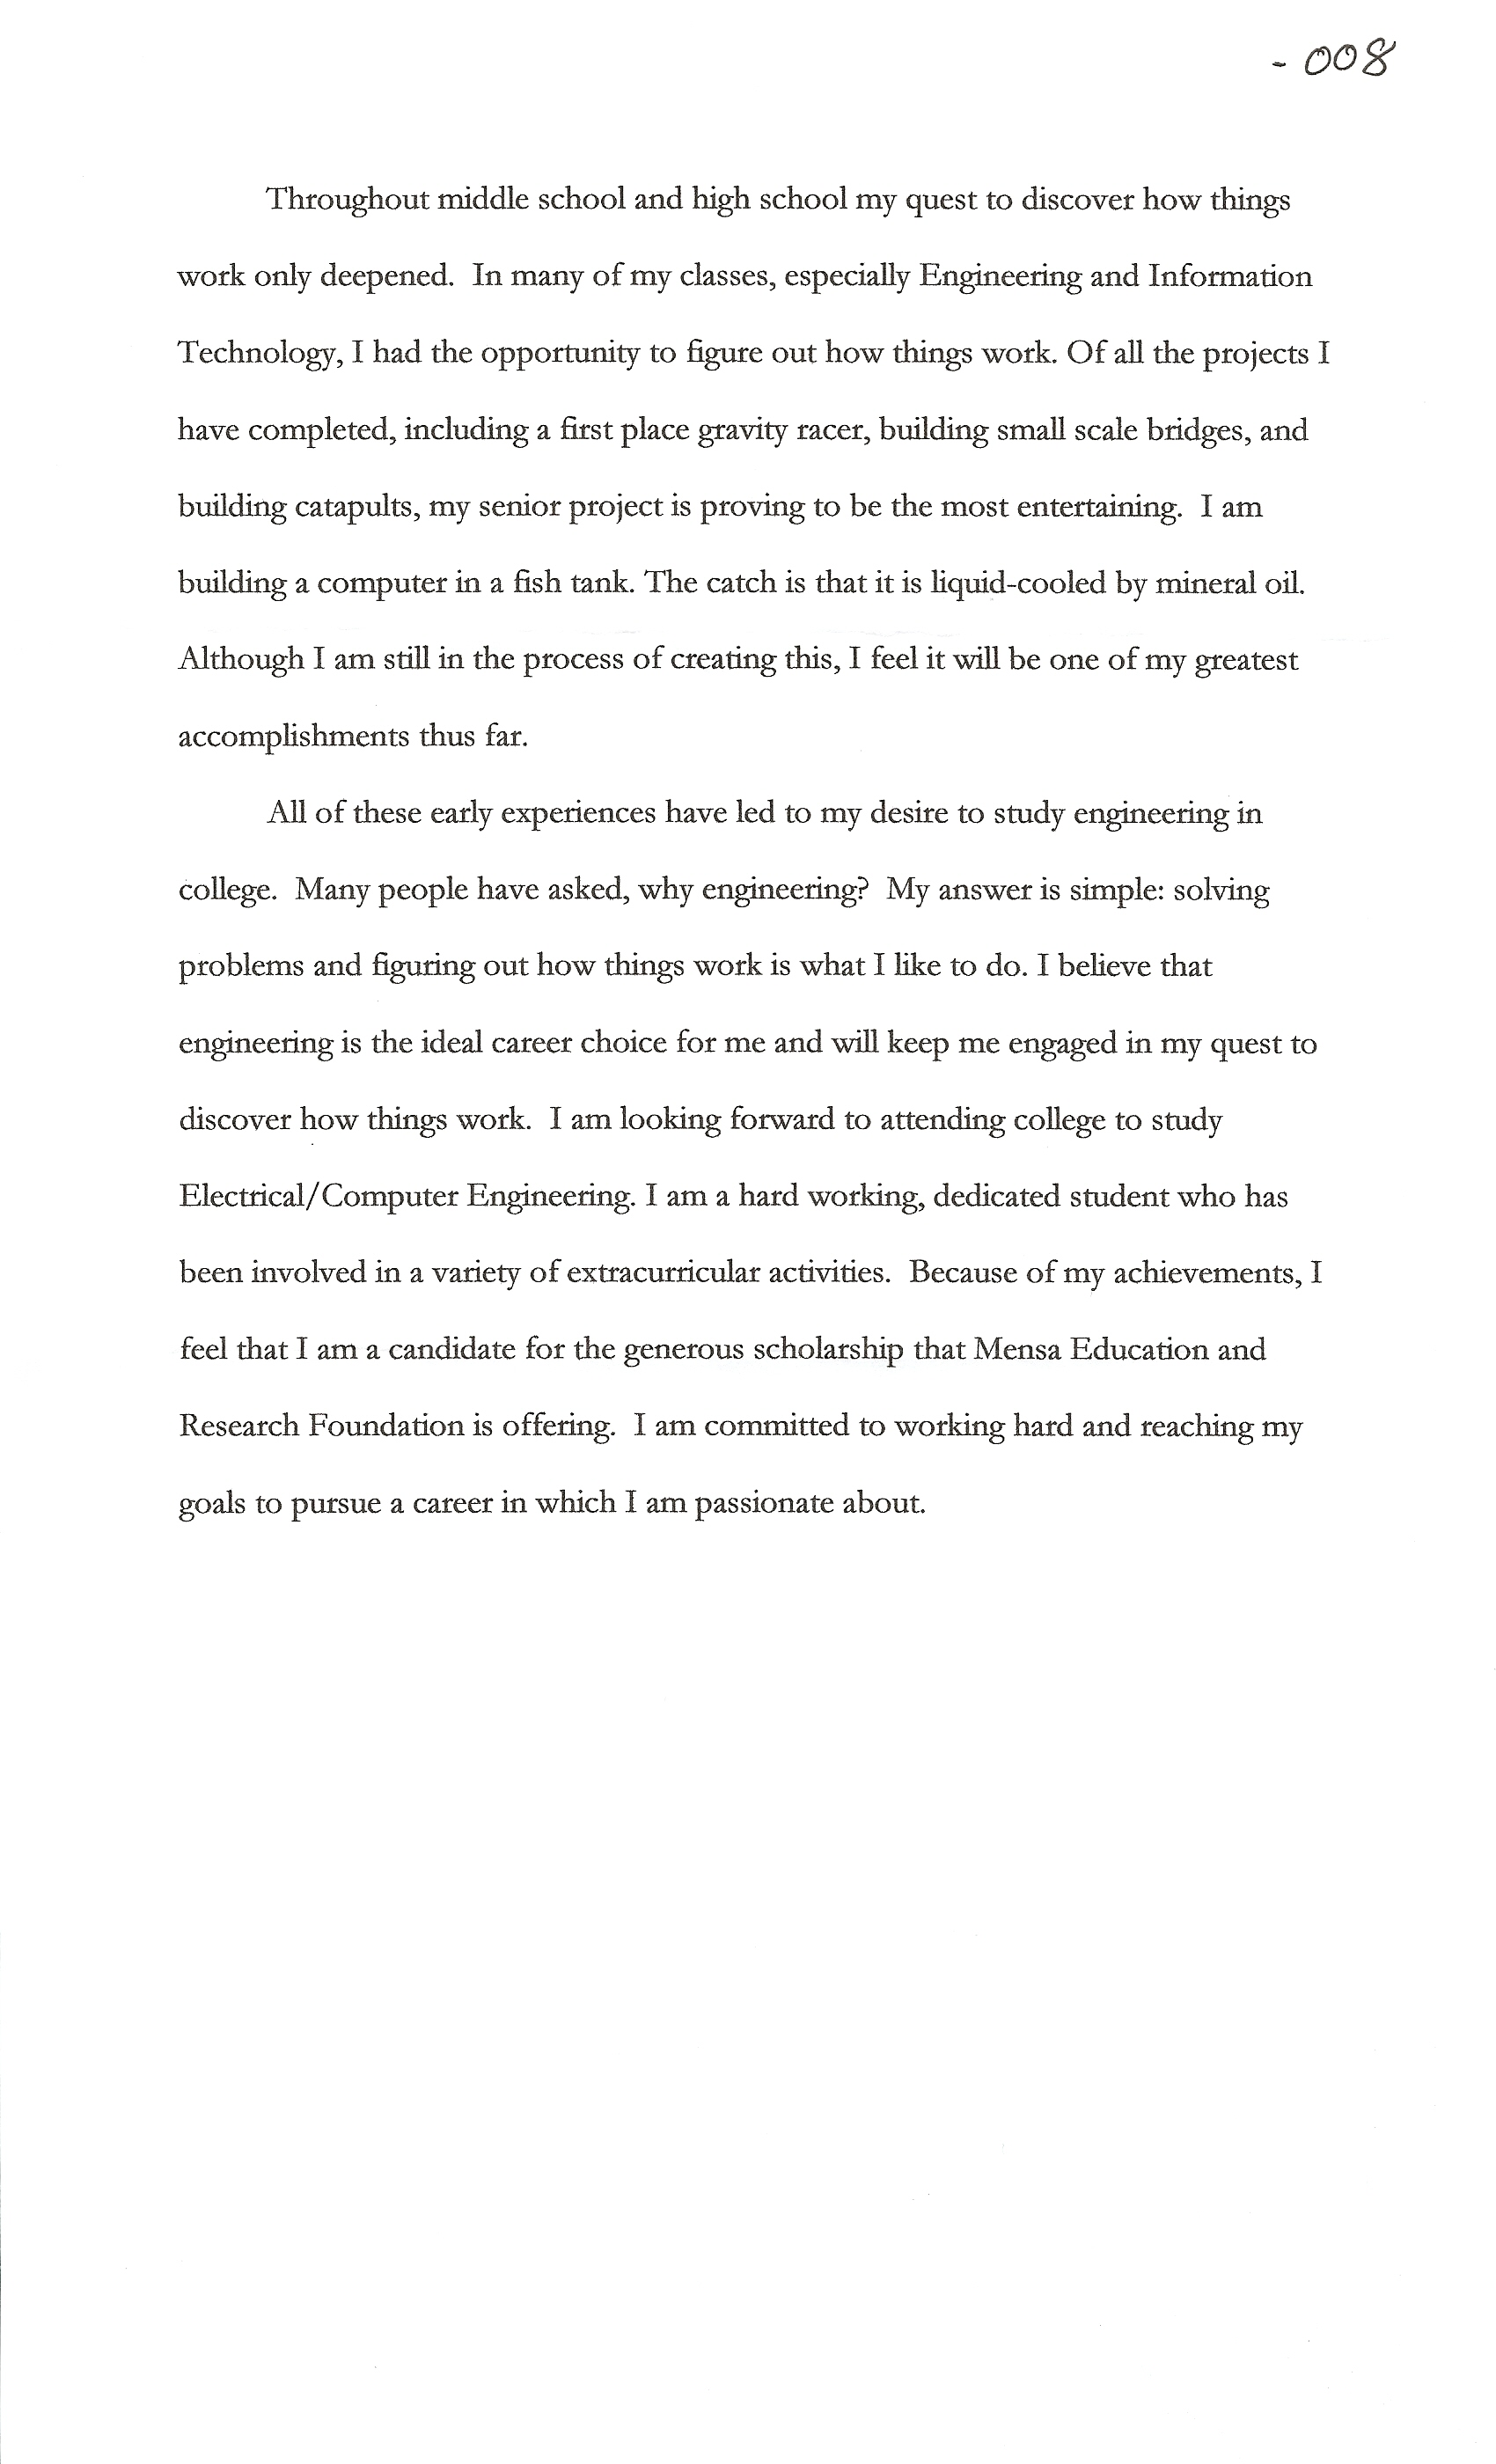 008 Goals Essay Examples Example Professional Career Goal Personal